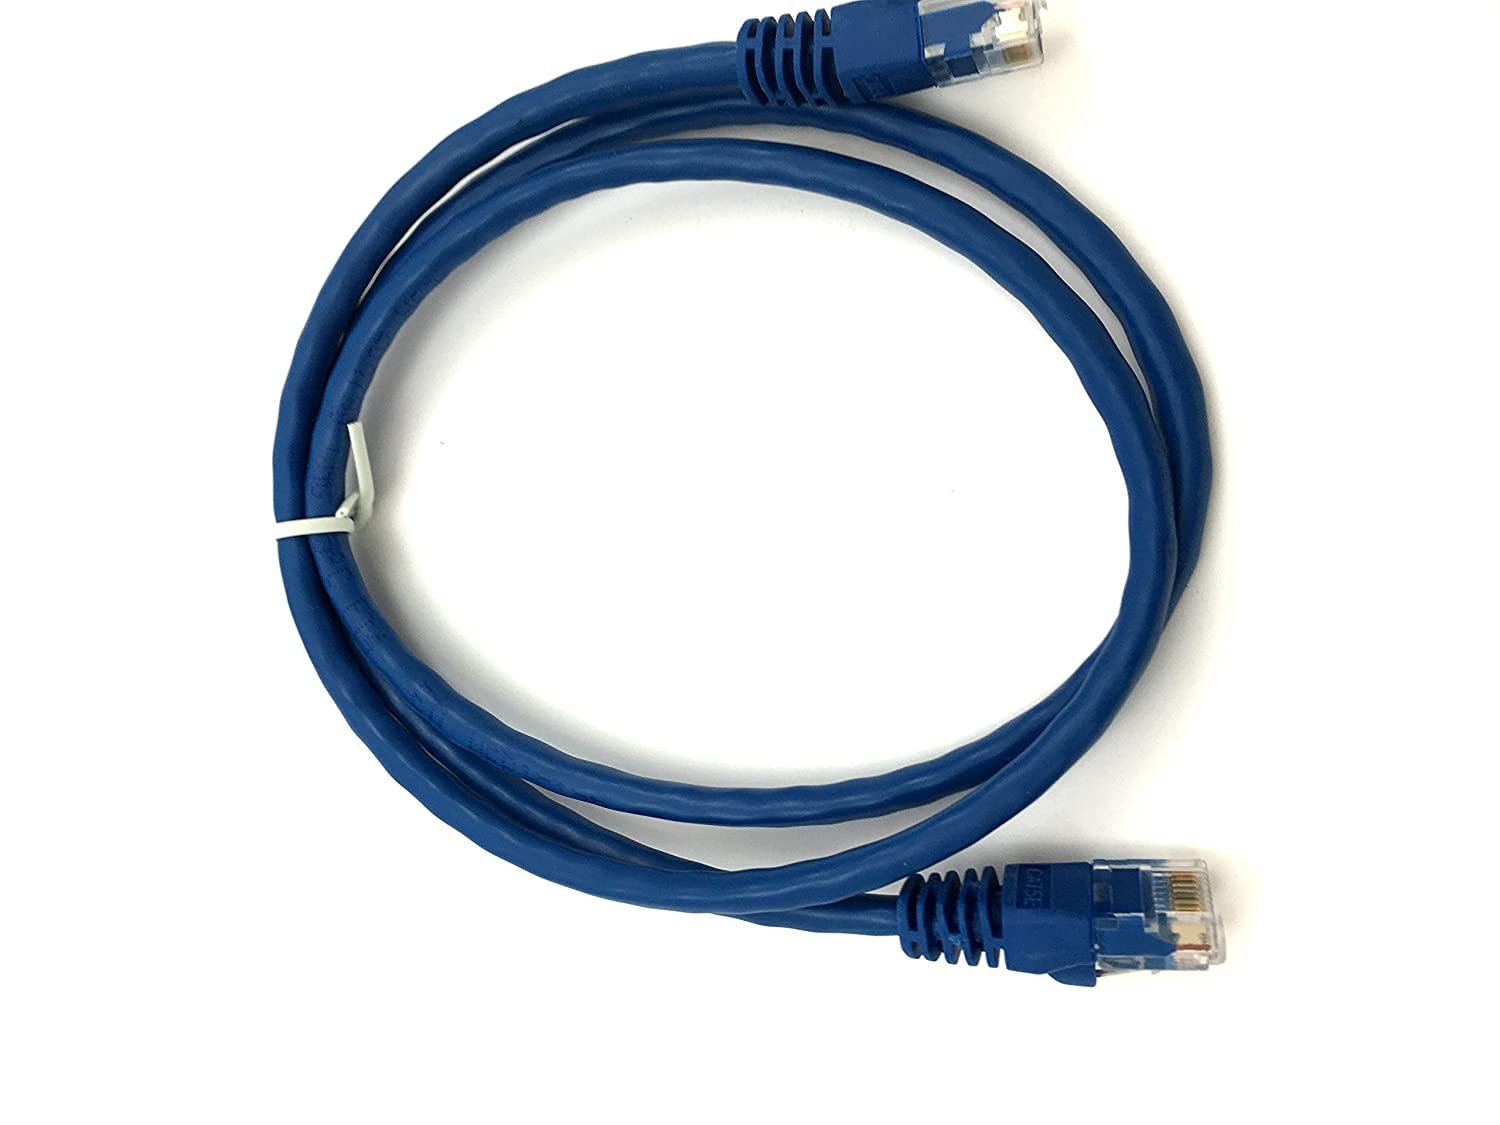 Xavier Cat5bl 25 Cat5e Ethernet Patch Cable Molded Cables Red Snagless Boot 7 Foot Boots Internet Blue Computers Accessories